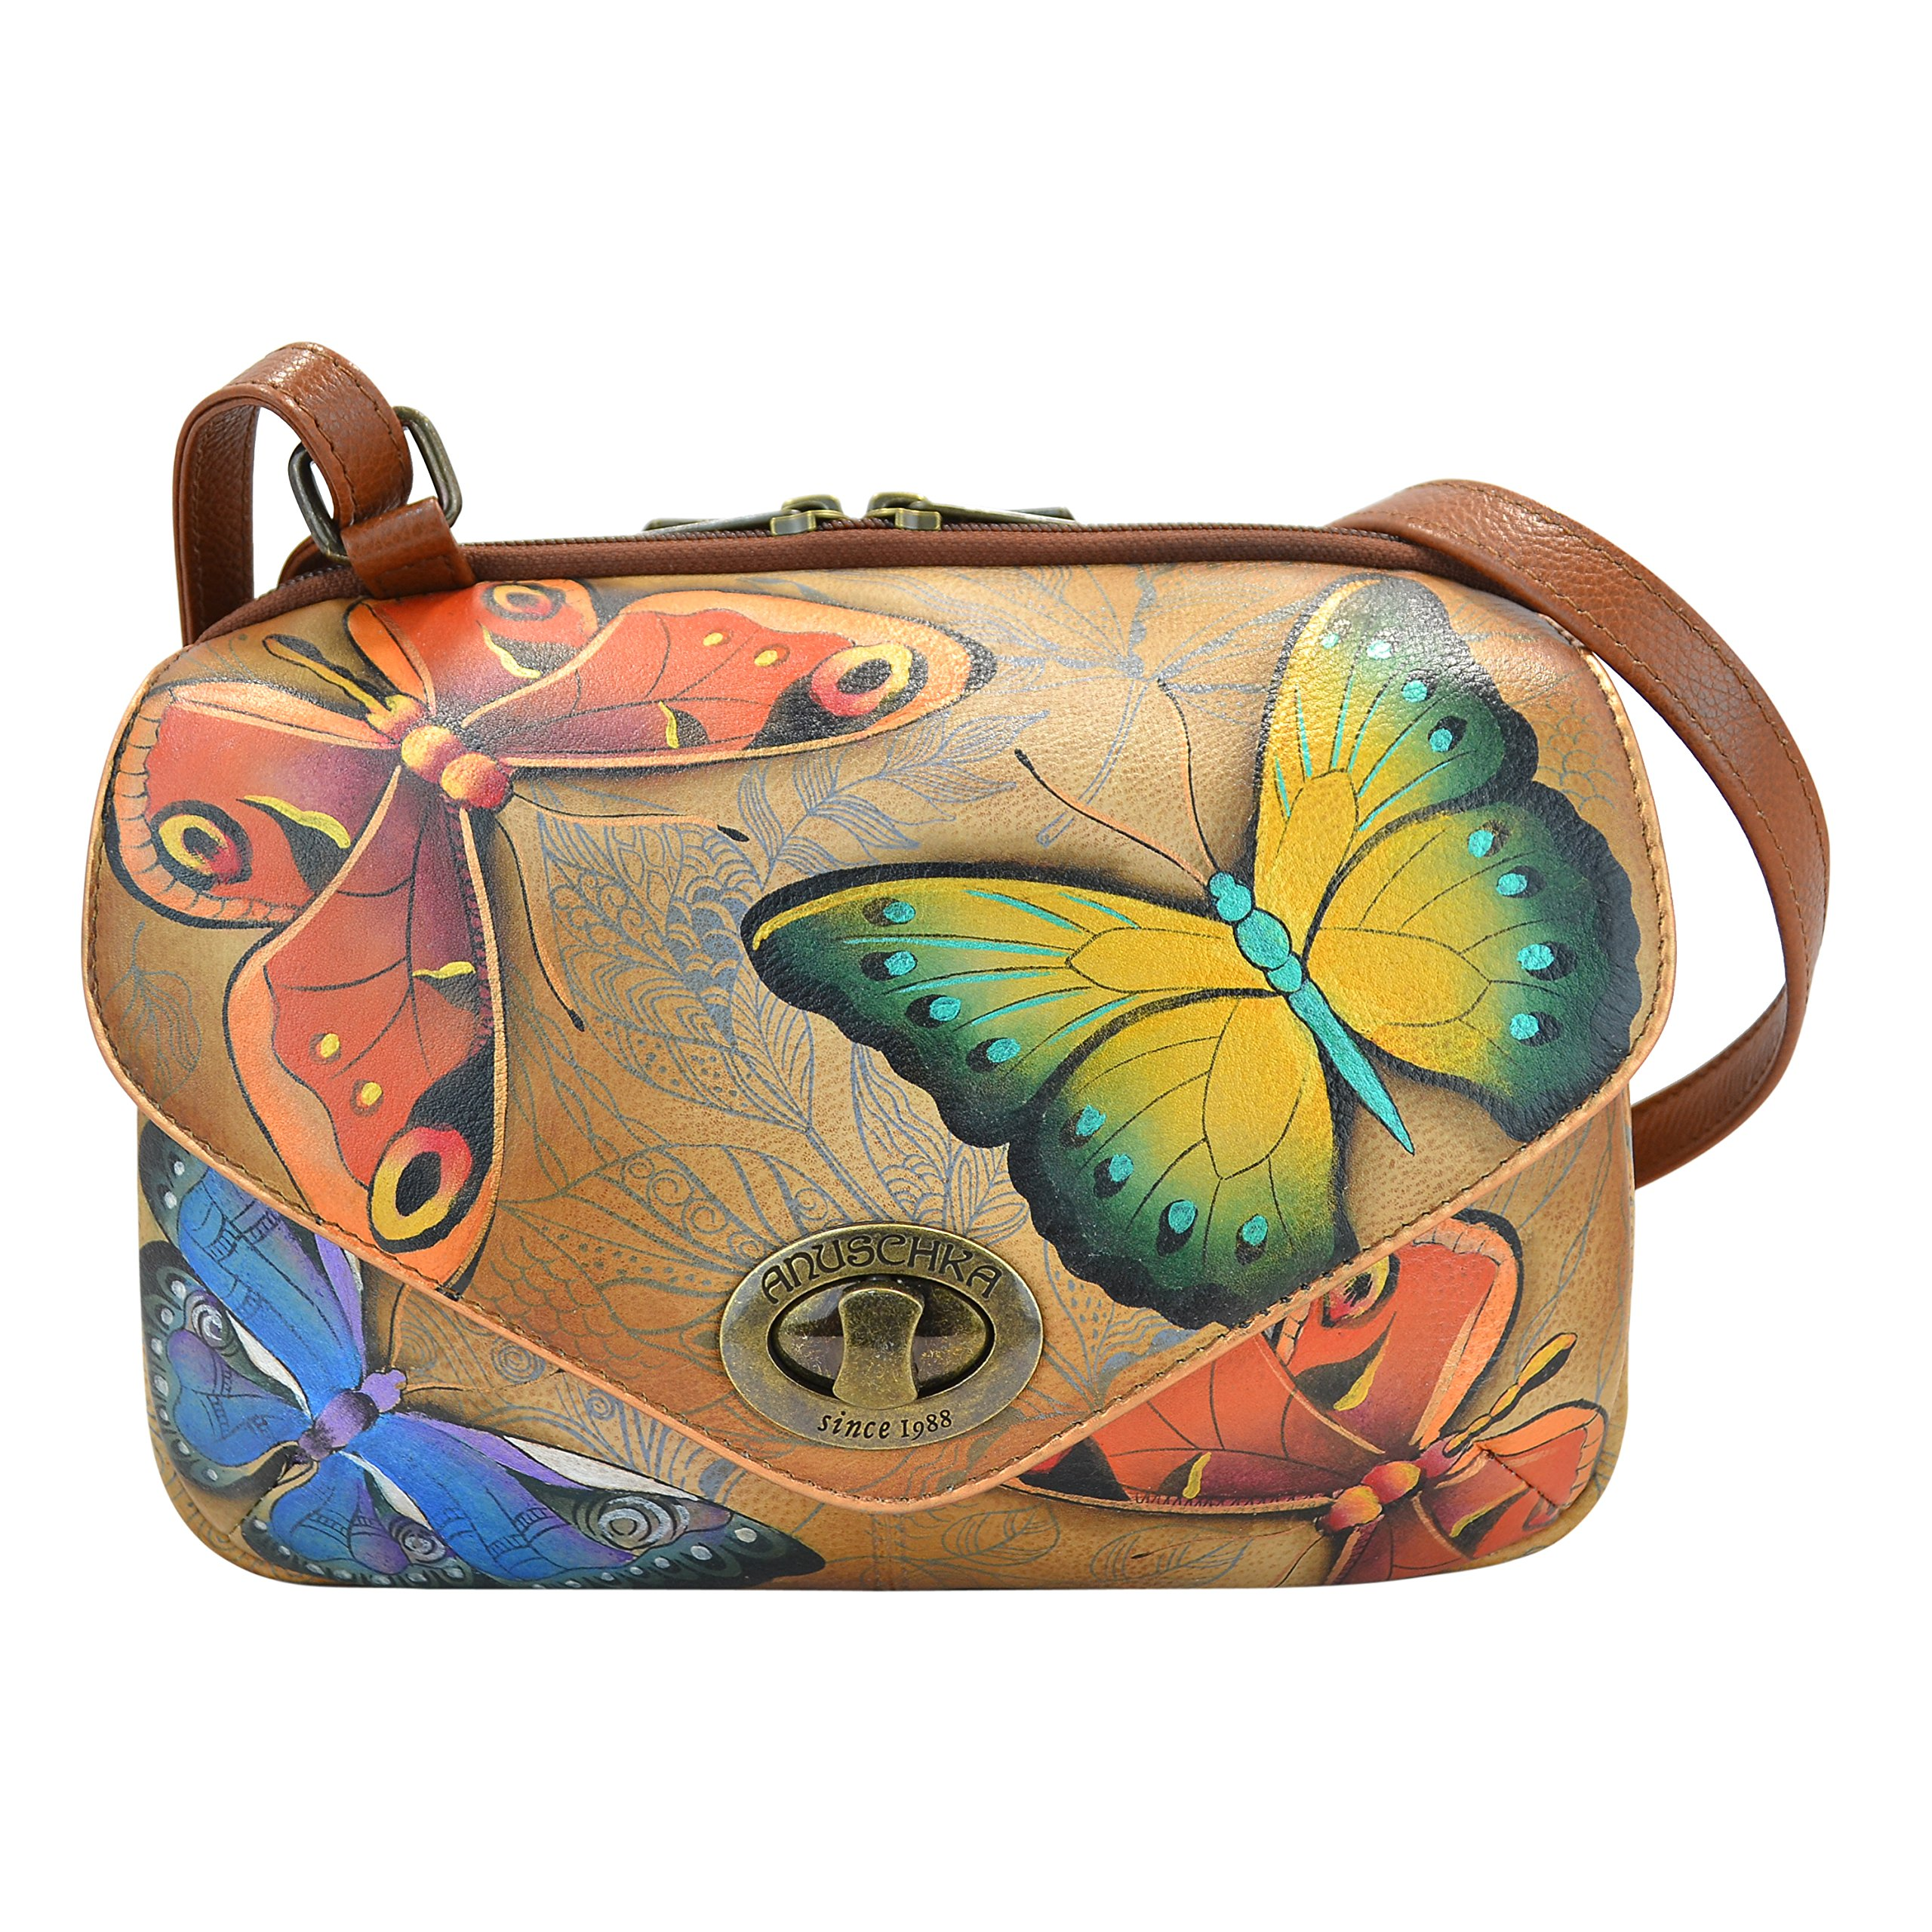 Anuschka Handpainted Painted Convertible Travel Organizer,Earth Song, Est-Earth Song